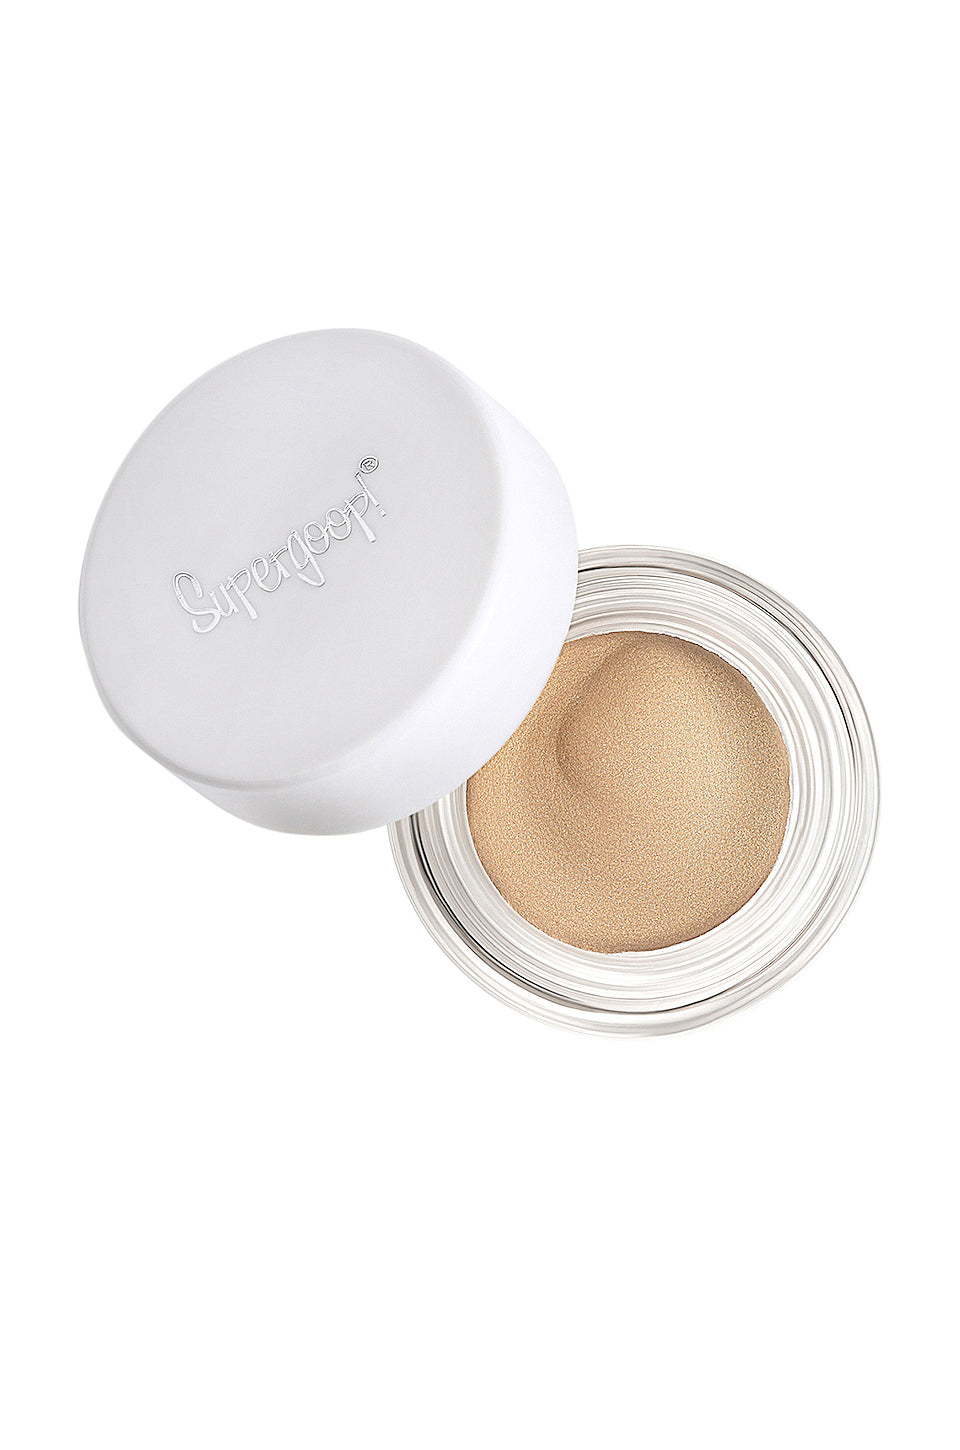 Shimmer Shade SPF 30 Golden Hour, 0.18 oz